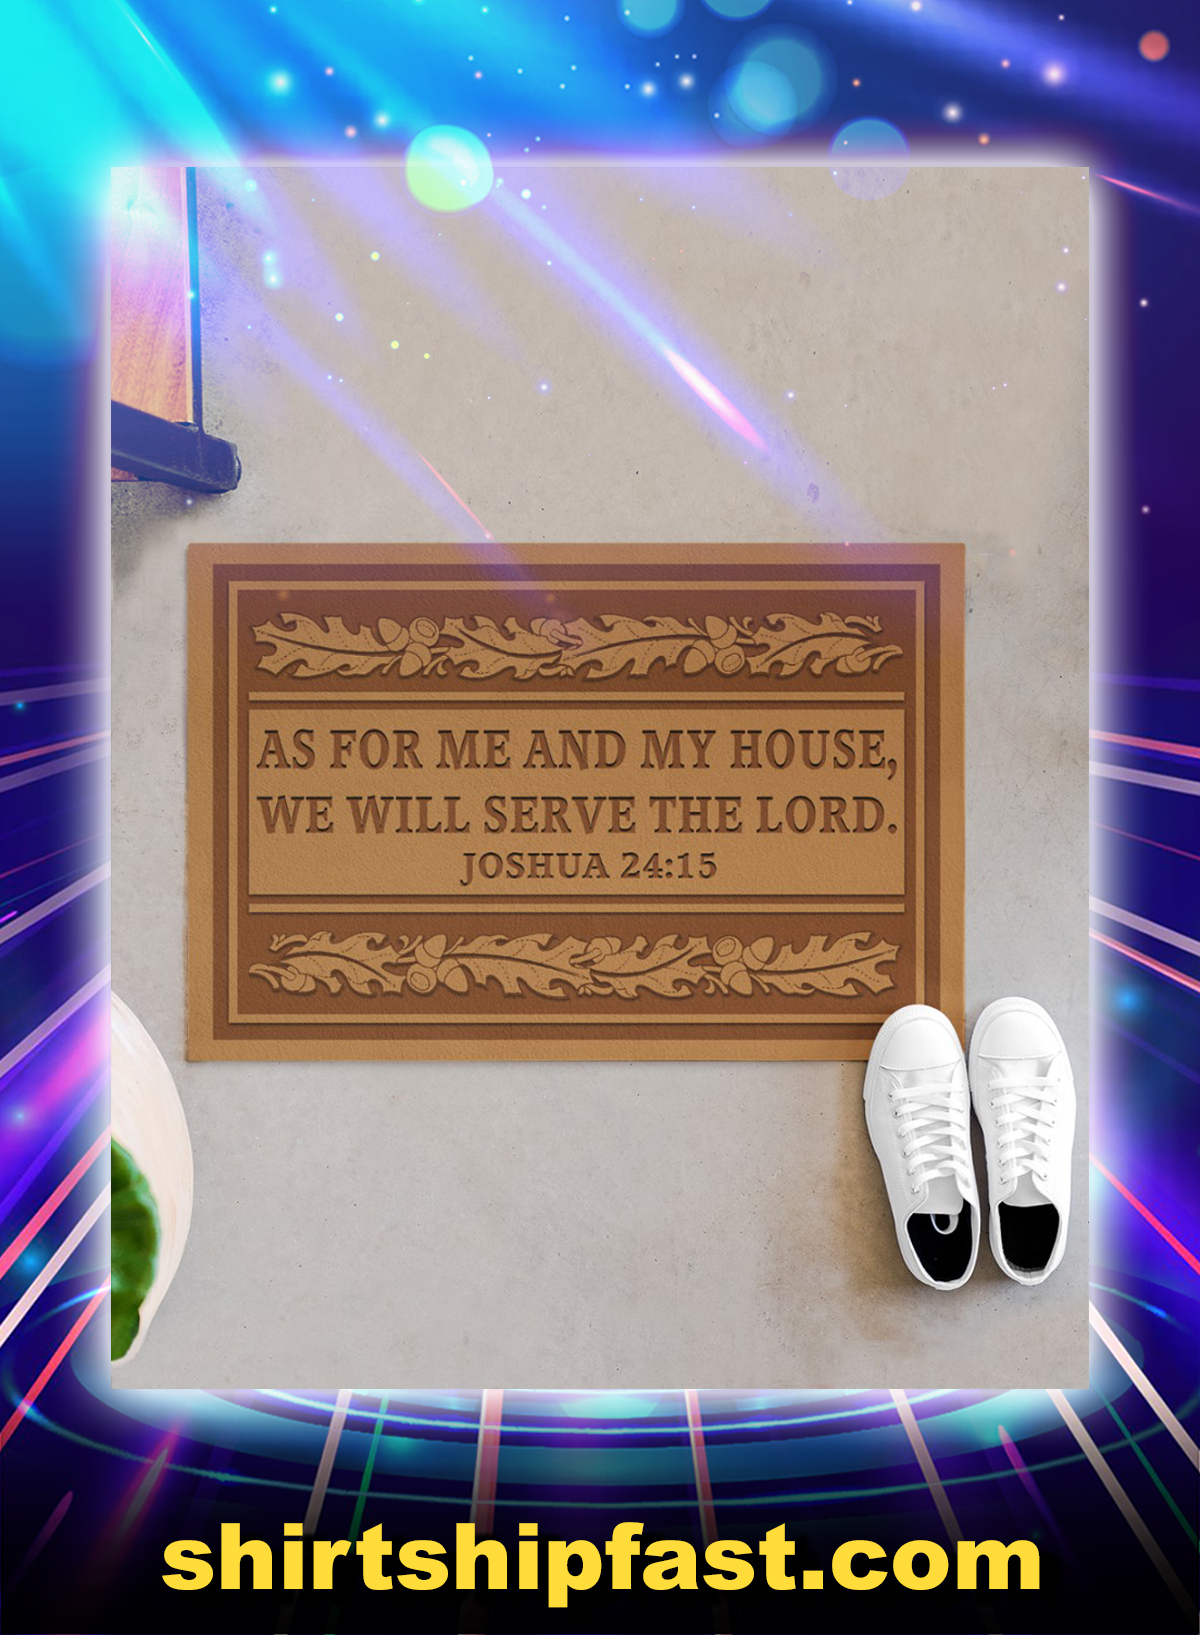 As for me and my house we will serve the lord joshua 24 15 doormat - Picture 1